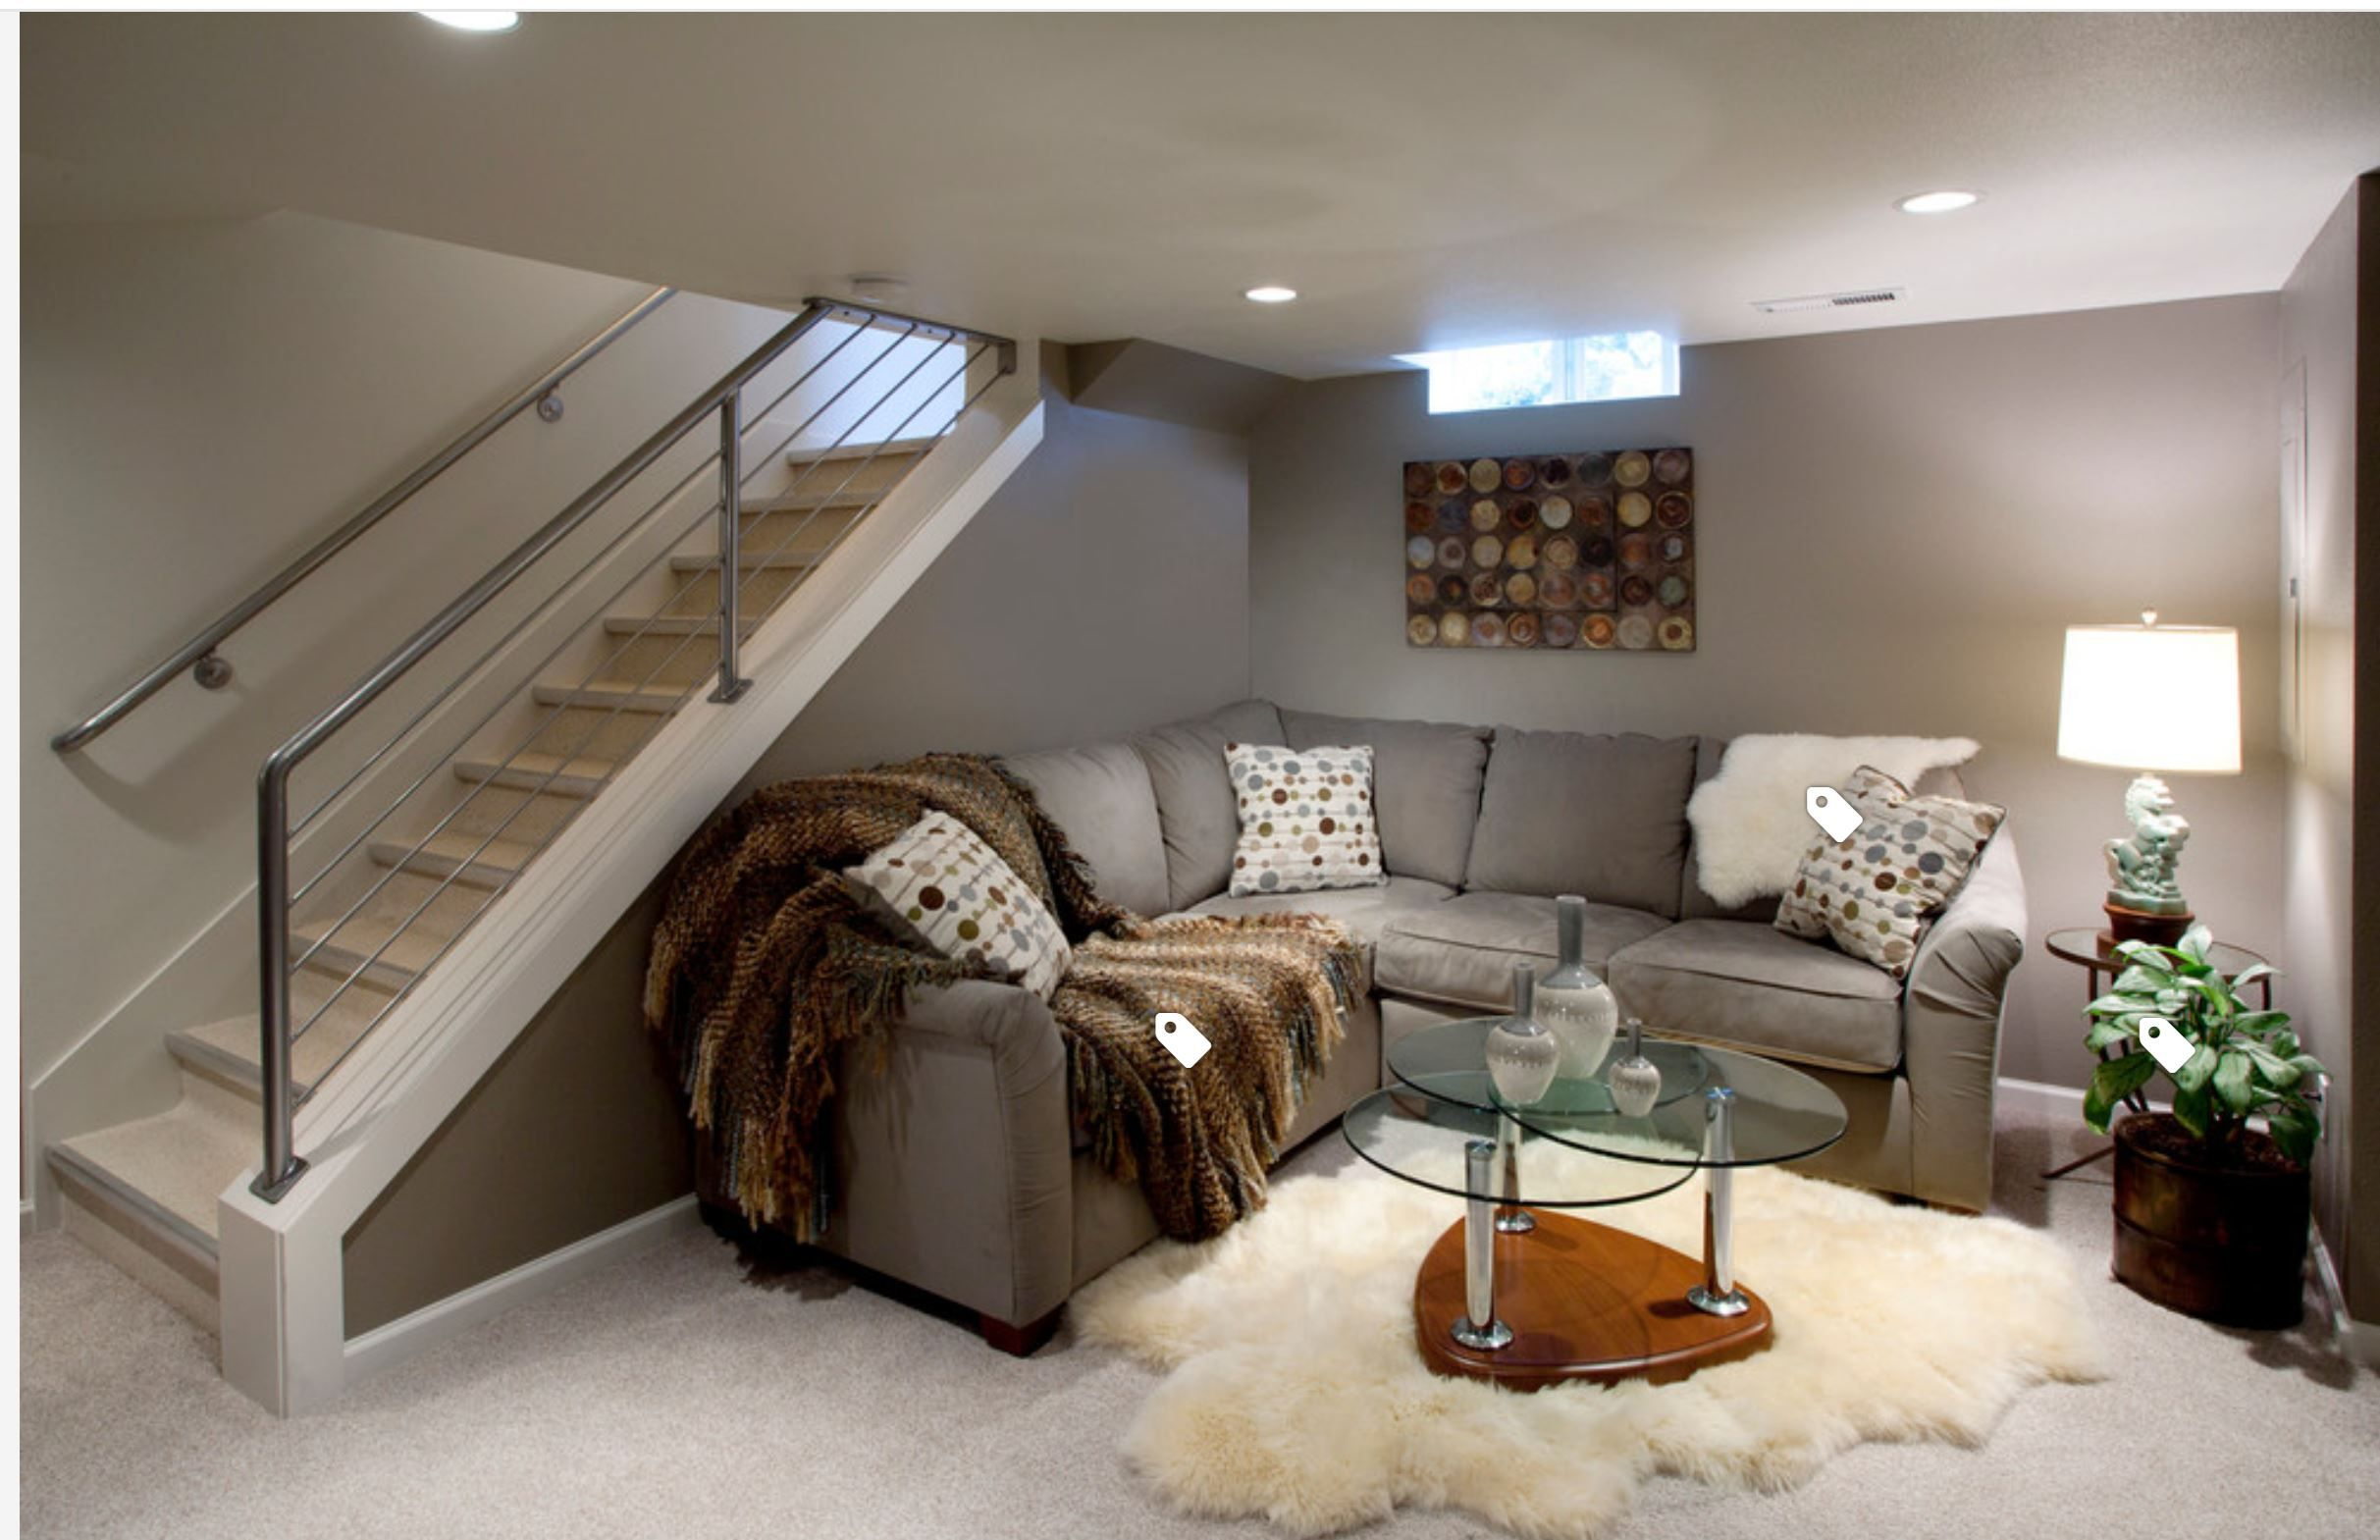 Useful Tips For Creating A Beautiful Basement Bedroom Interior -